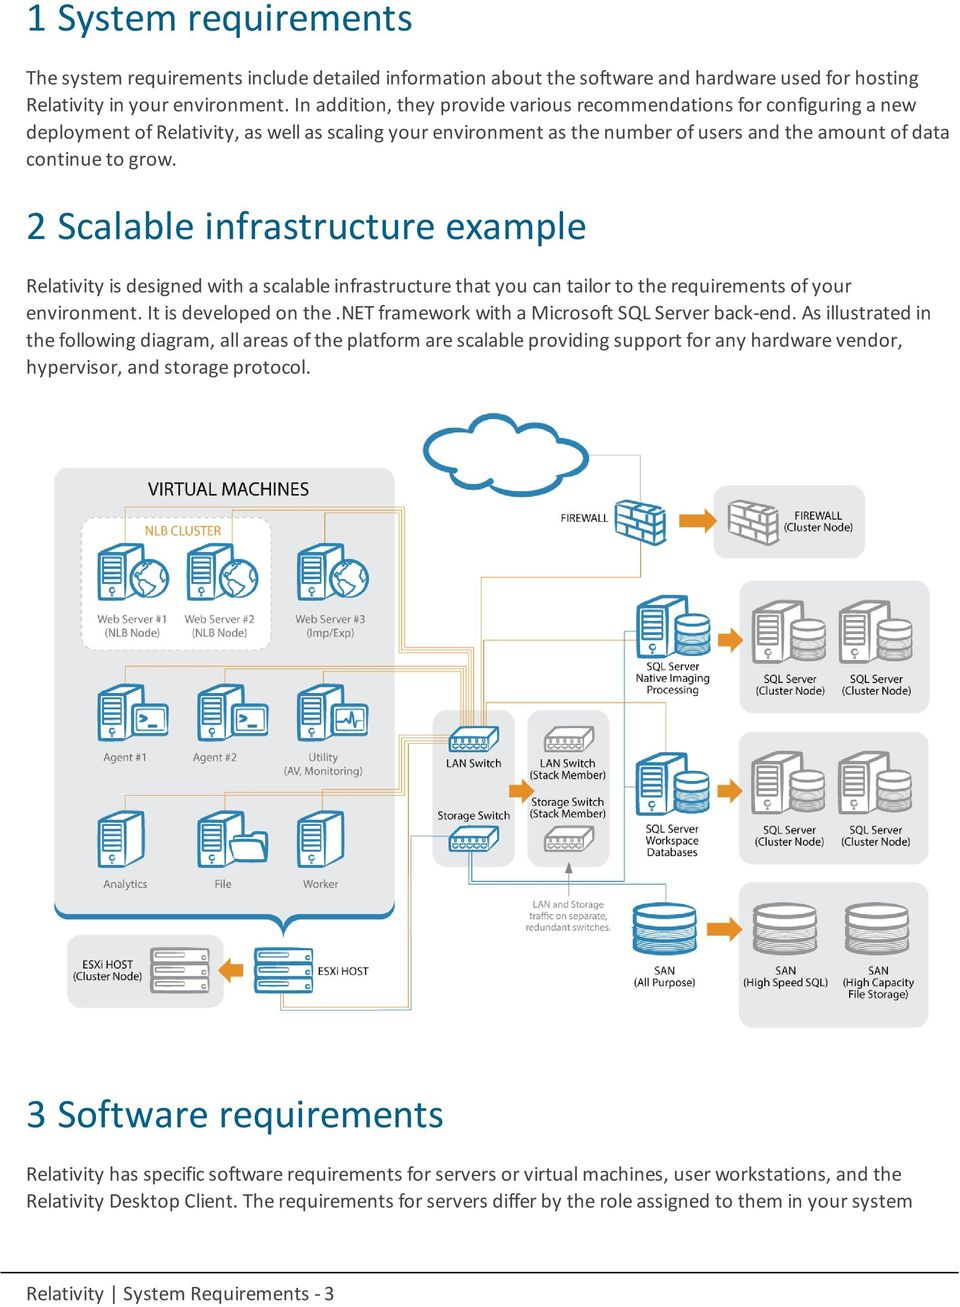 2 Scalable infrastructure example Relativity is designed with a scalable infrastructure that you can tailor to the requirements of your environment. It is developed on the.